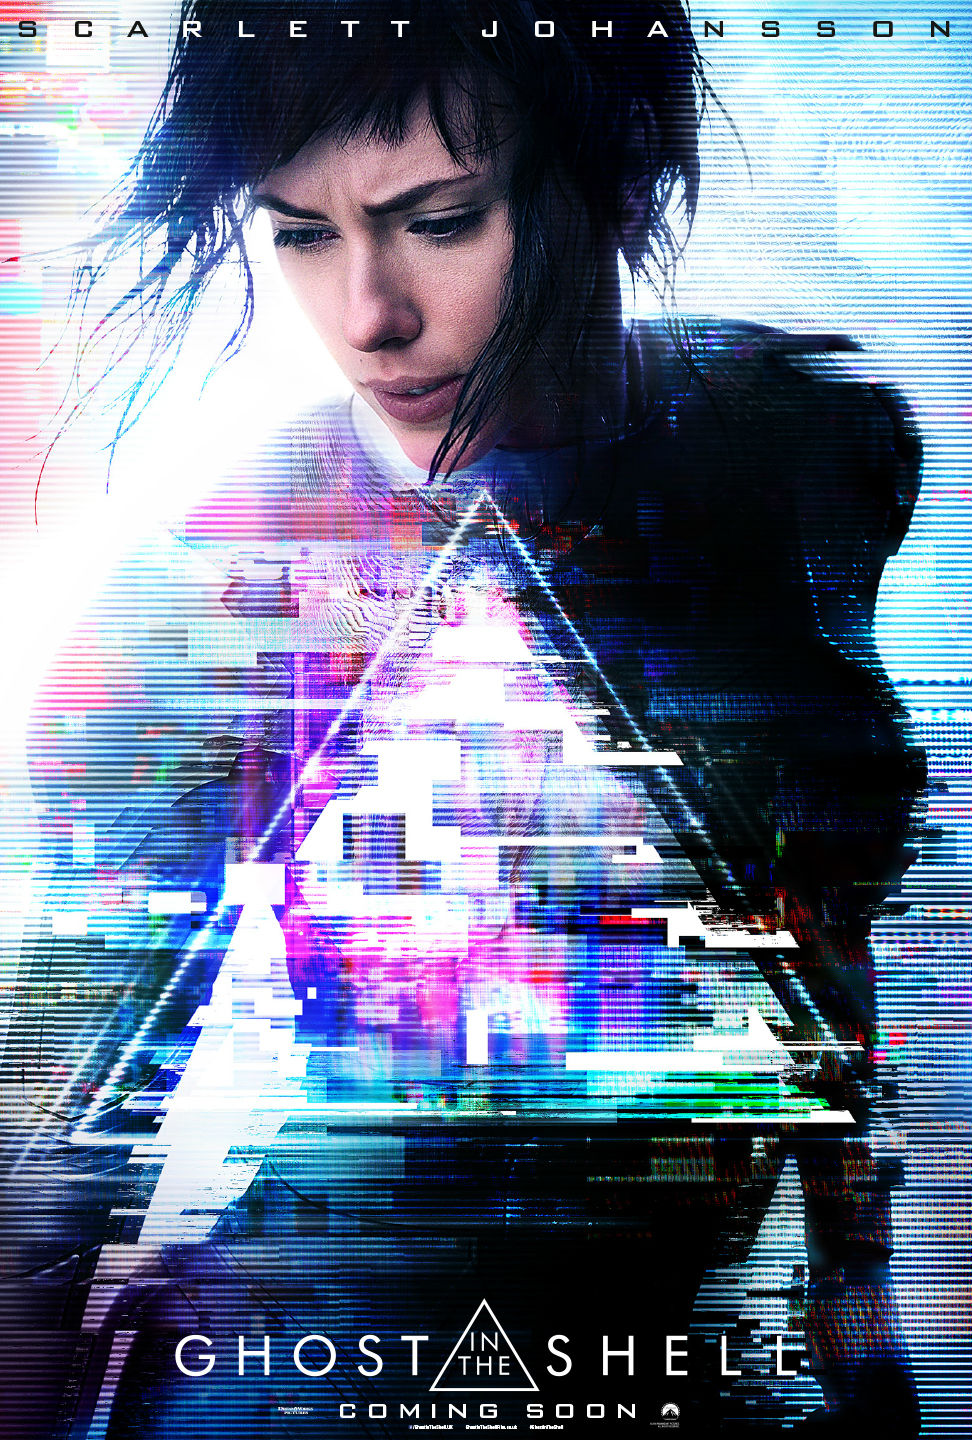 Ghost in the Shell poster (Screen Rant)